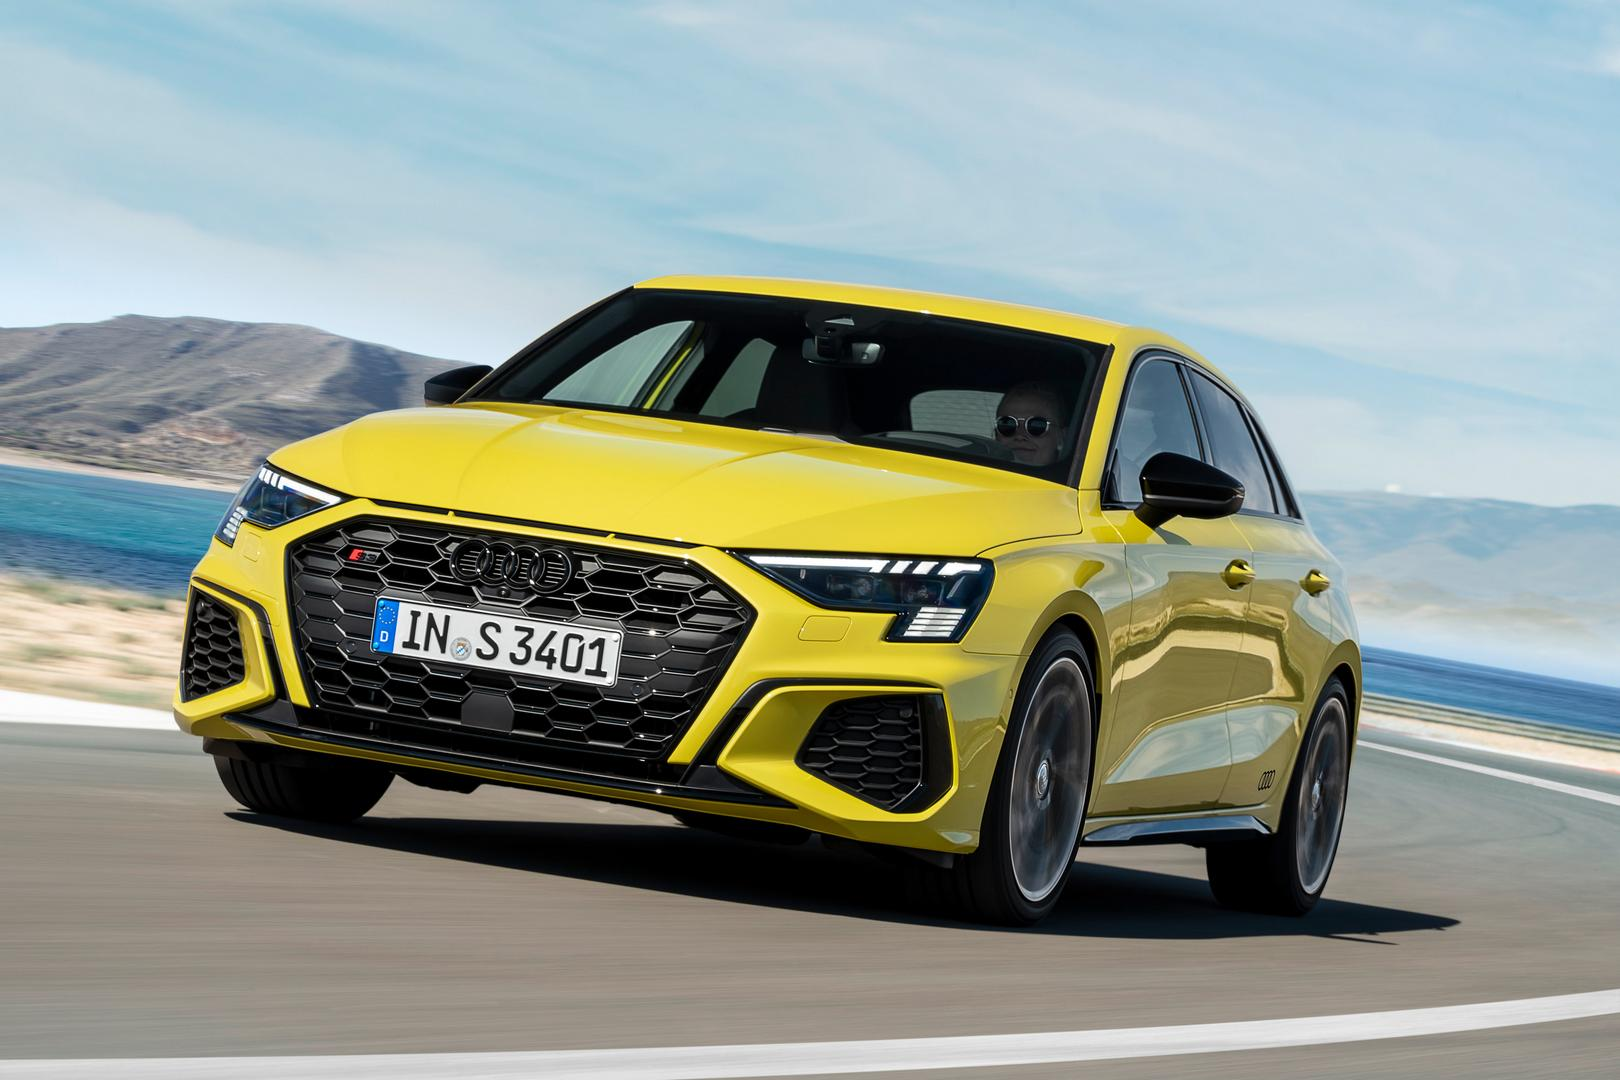 2021 Audi S3 Revealed Hatchback And Sedan With 310 Hp Gtspirit